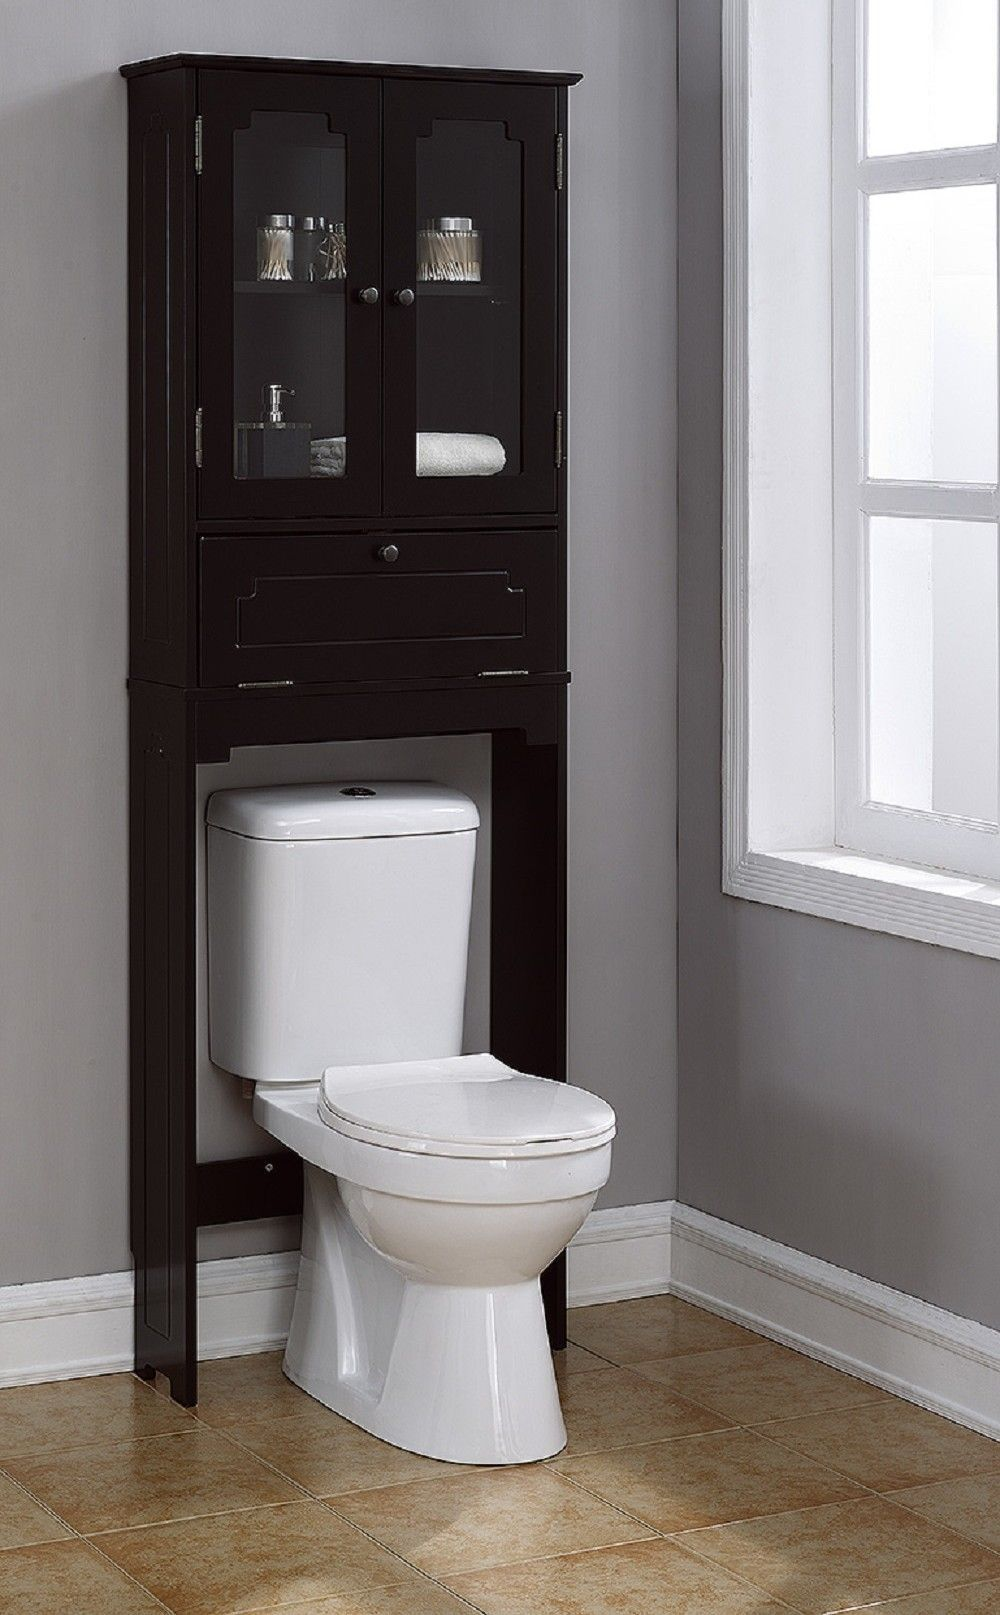 Runfine Group 23 6 X 68 8 Over The Toilet Cabinet Over The Toilet Cabinet Cabinet Shelving Toilet